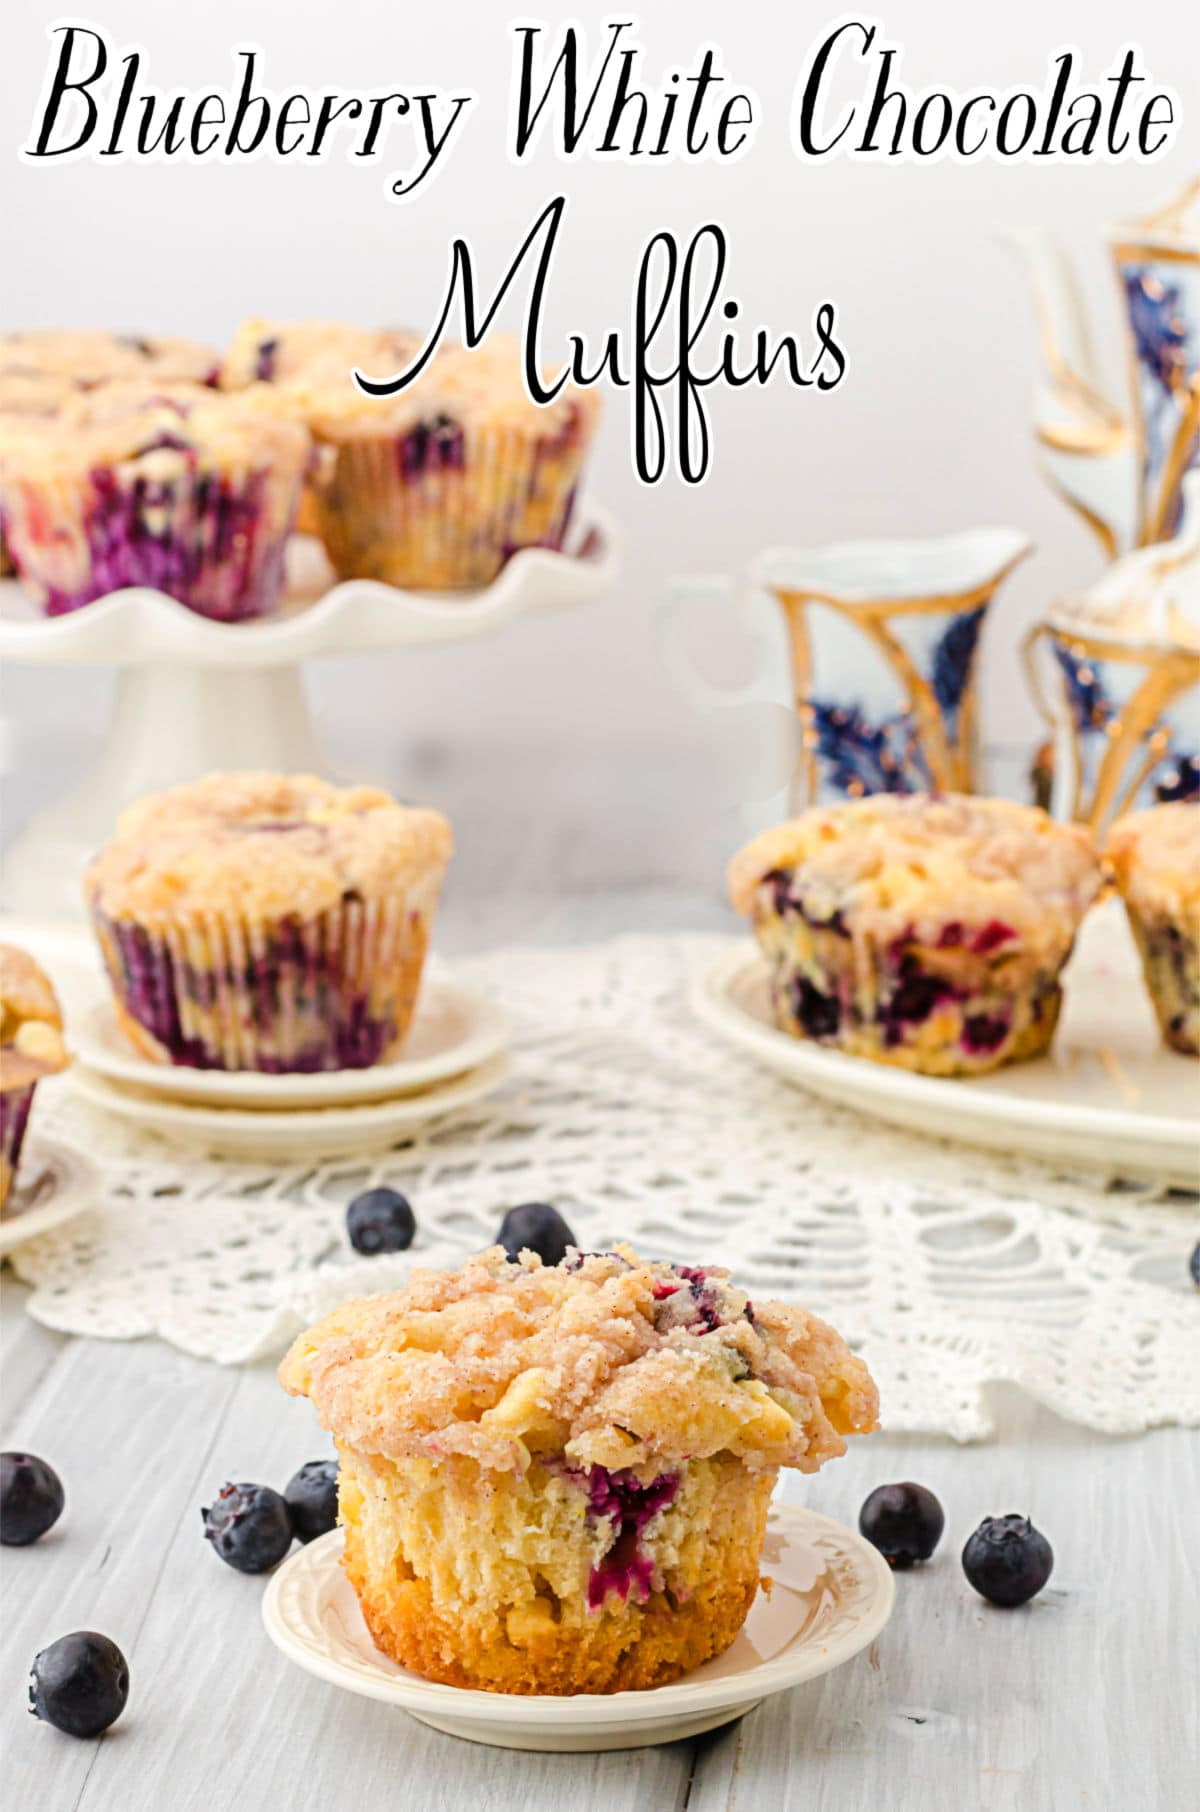 Title image for this recipe. Blueberry muffin on a plate with more muffins in the background.